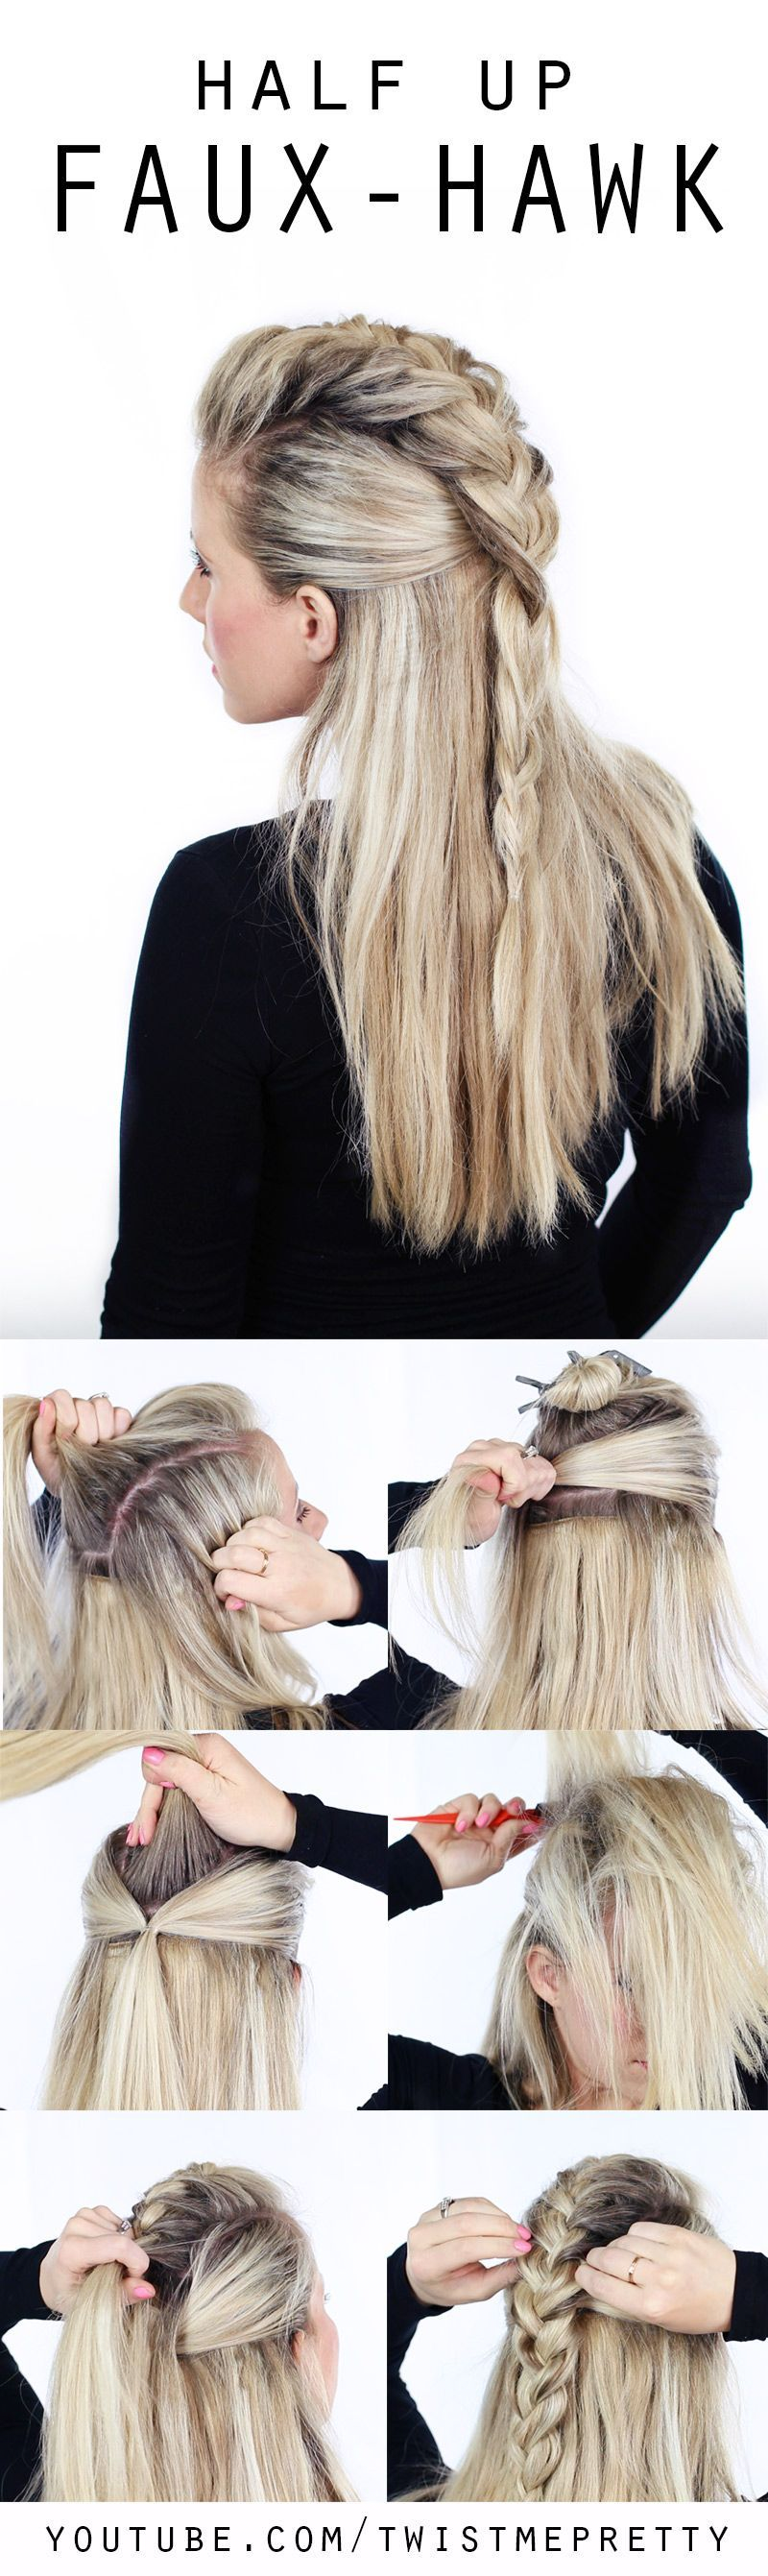 Willing my hair to grow faster easyhairstyleshalfup easy